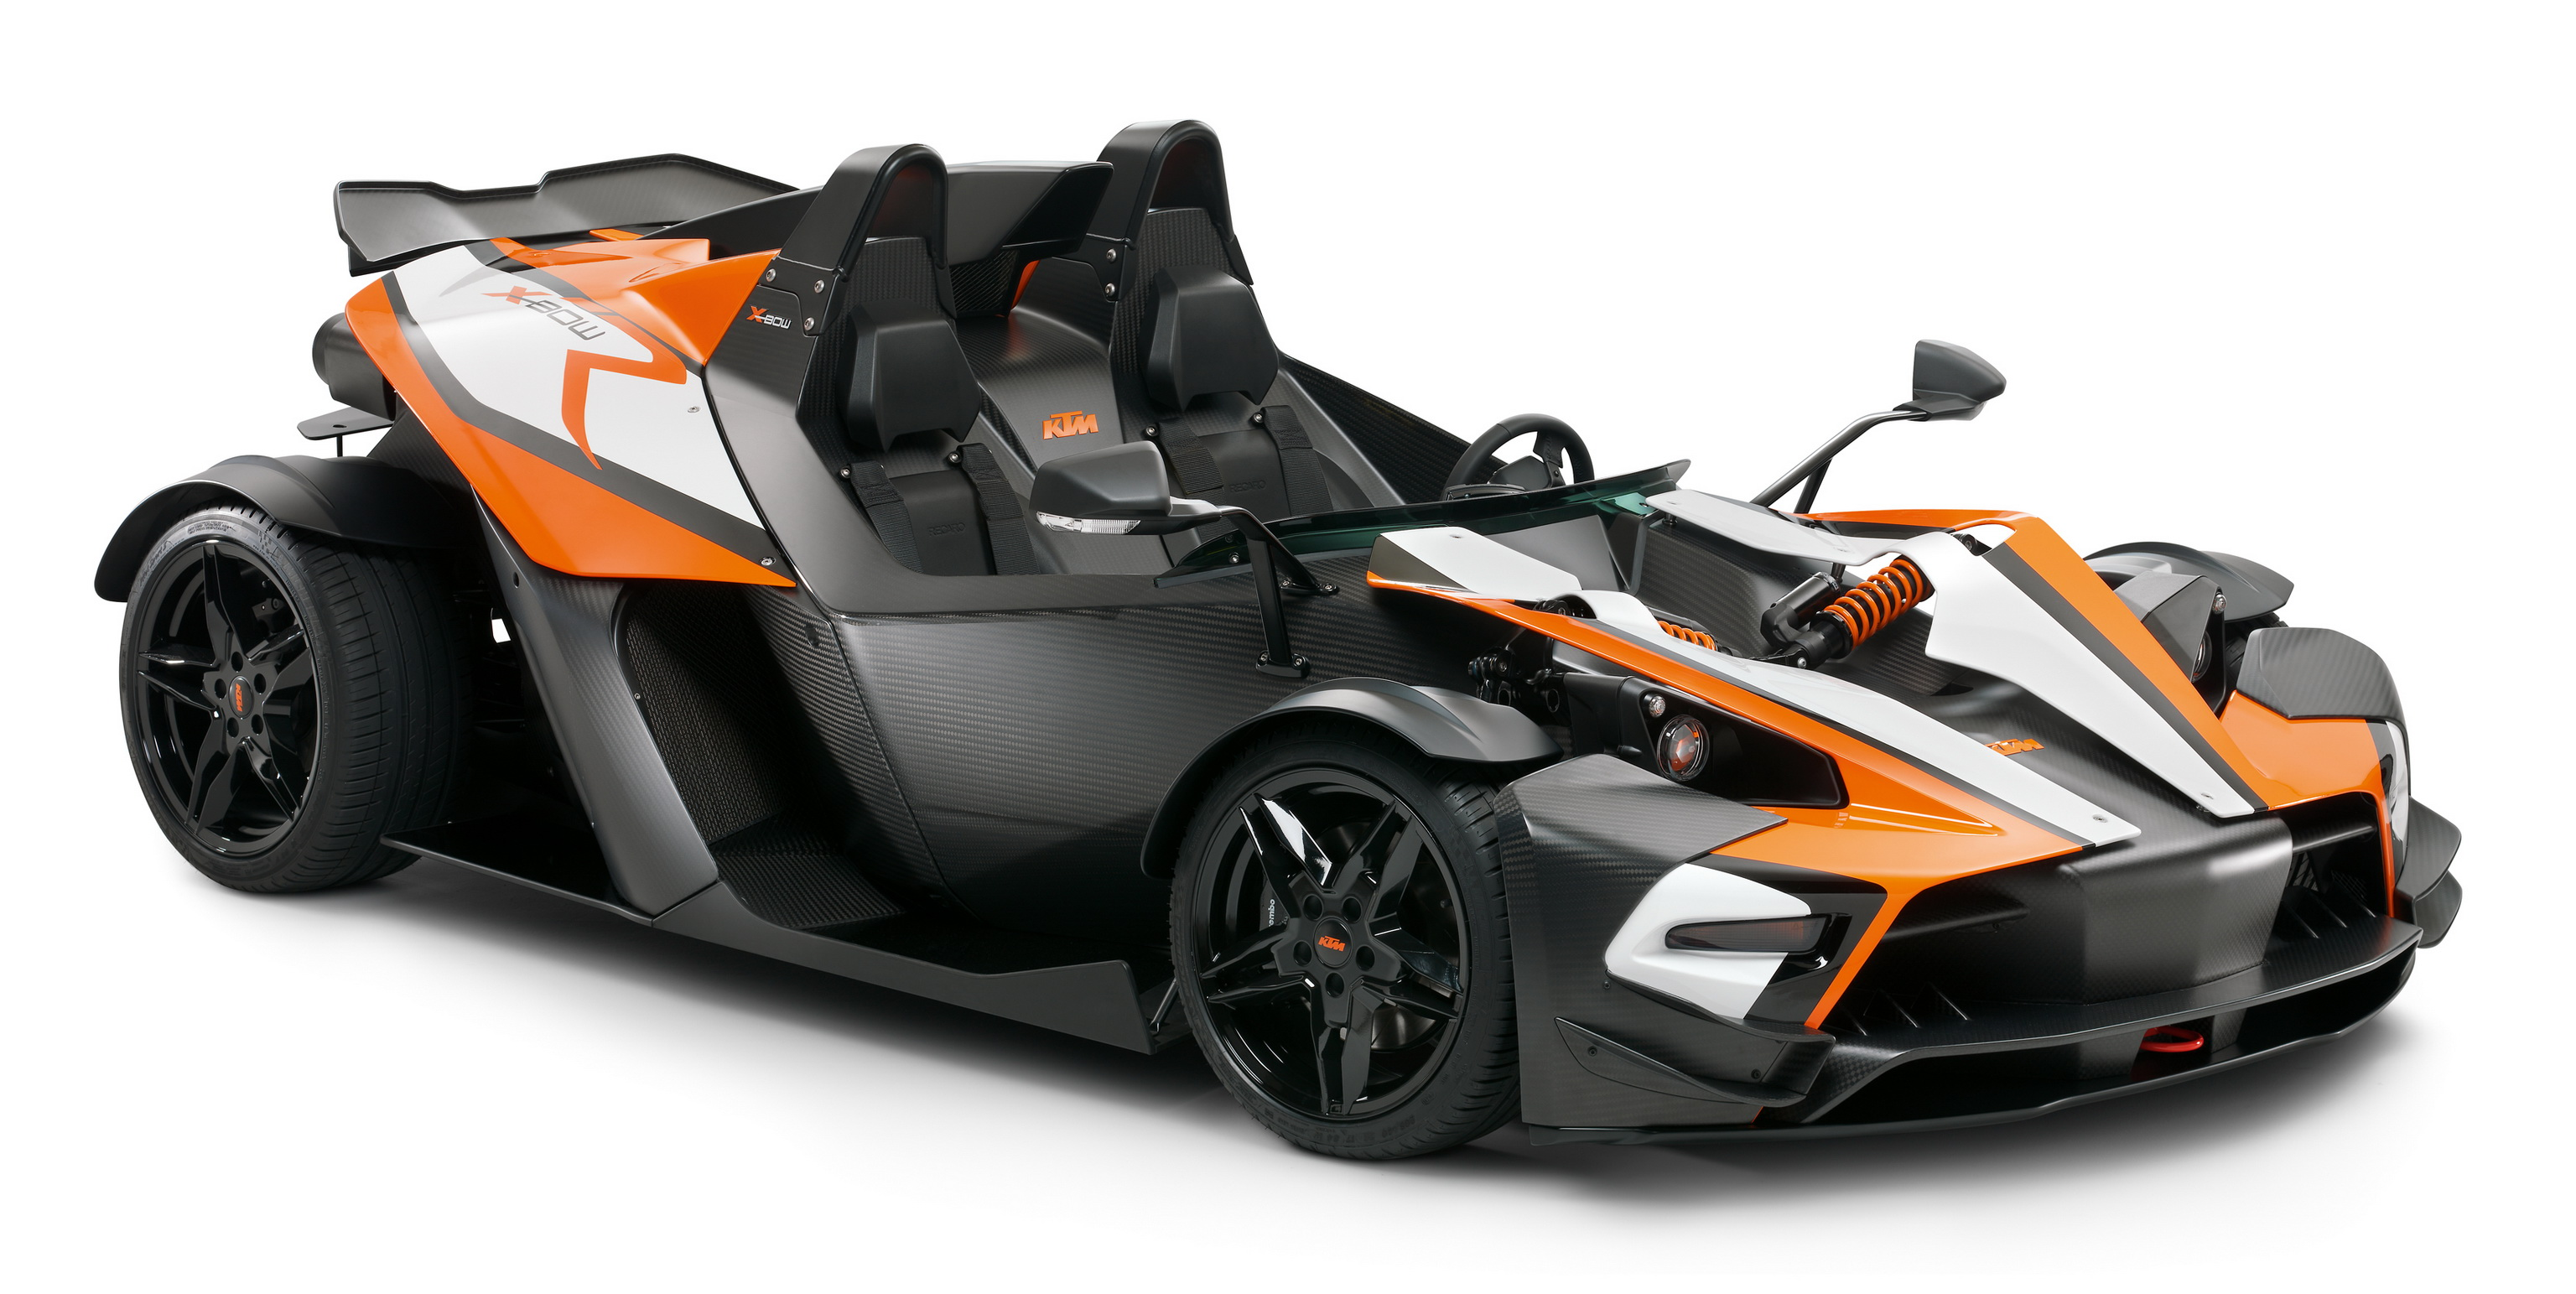 Ktm Crossbow For Sale Canada